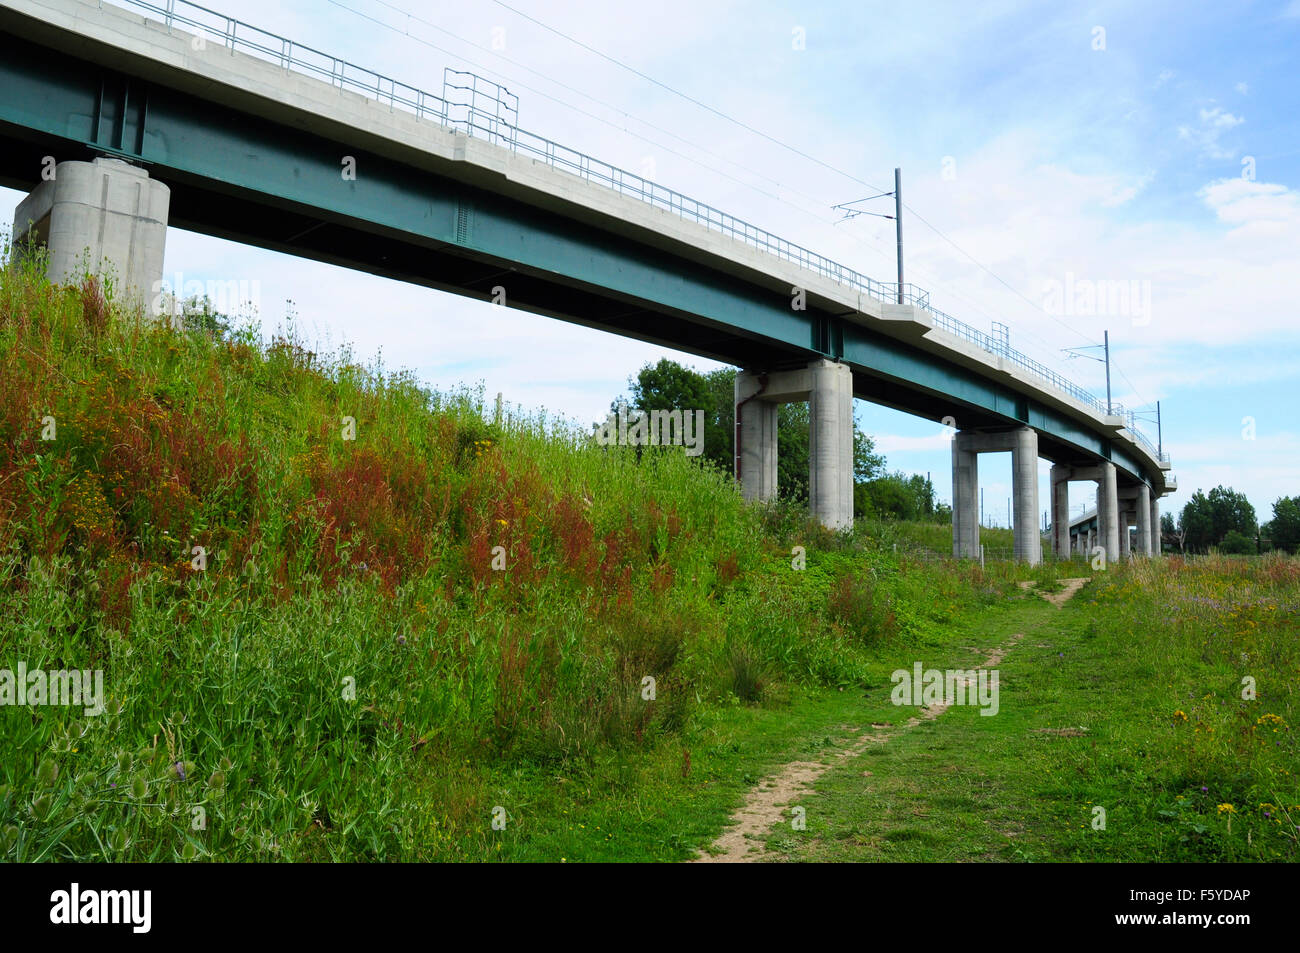 Railway flyover on the north side of Hitchin, Hertfordshire, England, UK - Stock Image